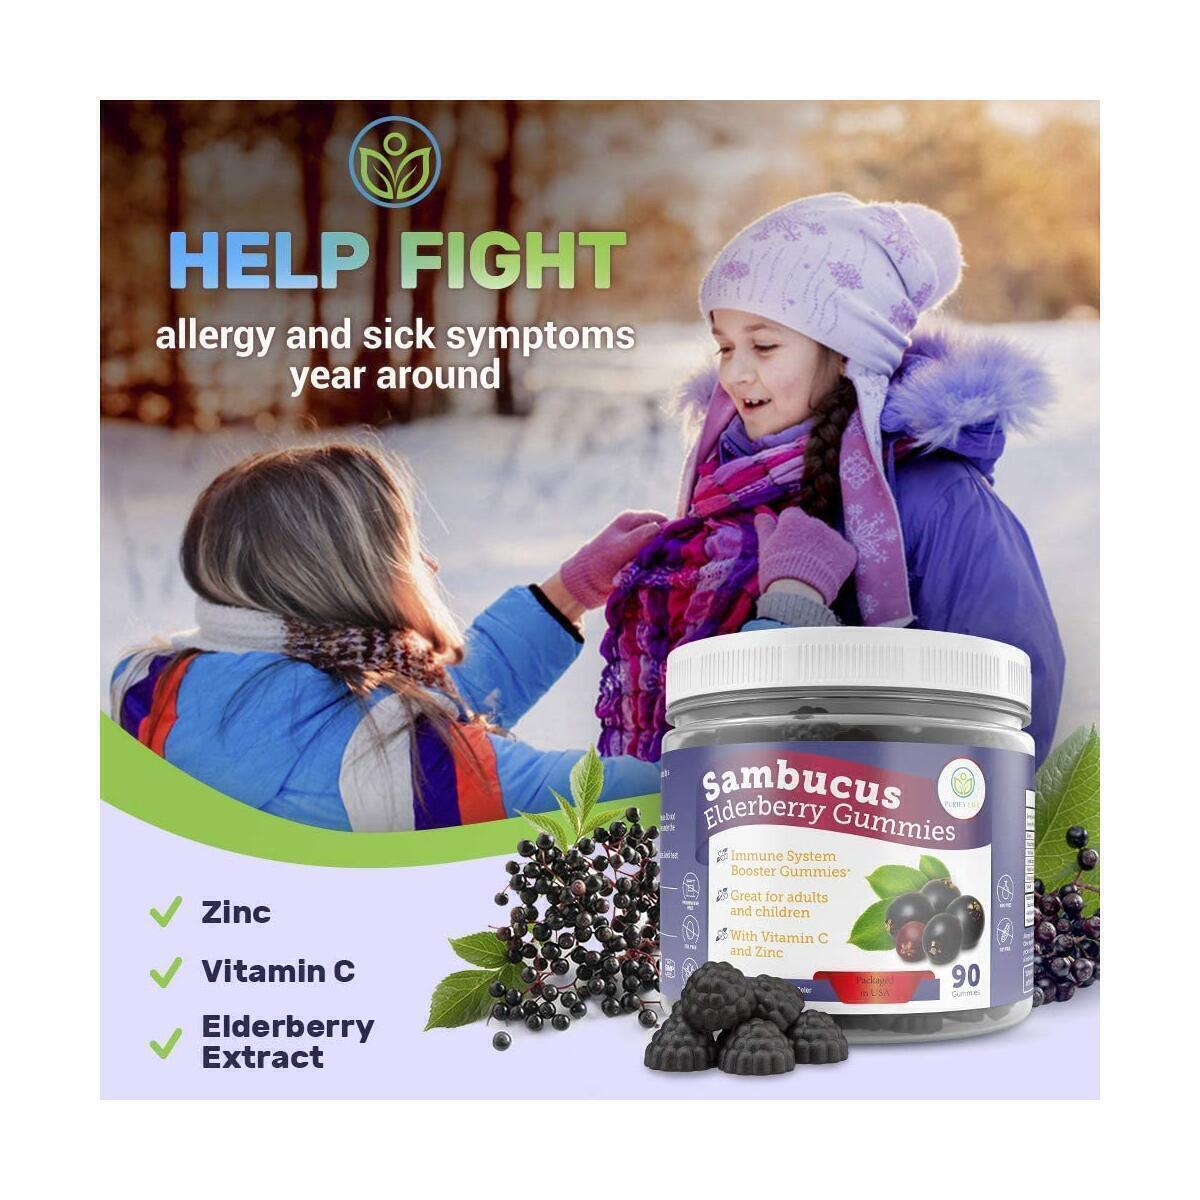 Elderberry Gummies for Kids & Adults - 260mg Sambucus, Vitamin C and Zinc (90 Gummies) Immune System Support Booster - Allergy Cold Relief - Chewable Supplement - No Capsules, Pills, Tablets or Syrup